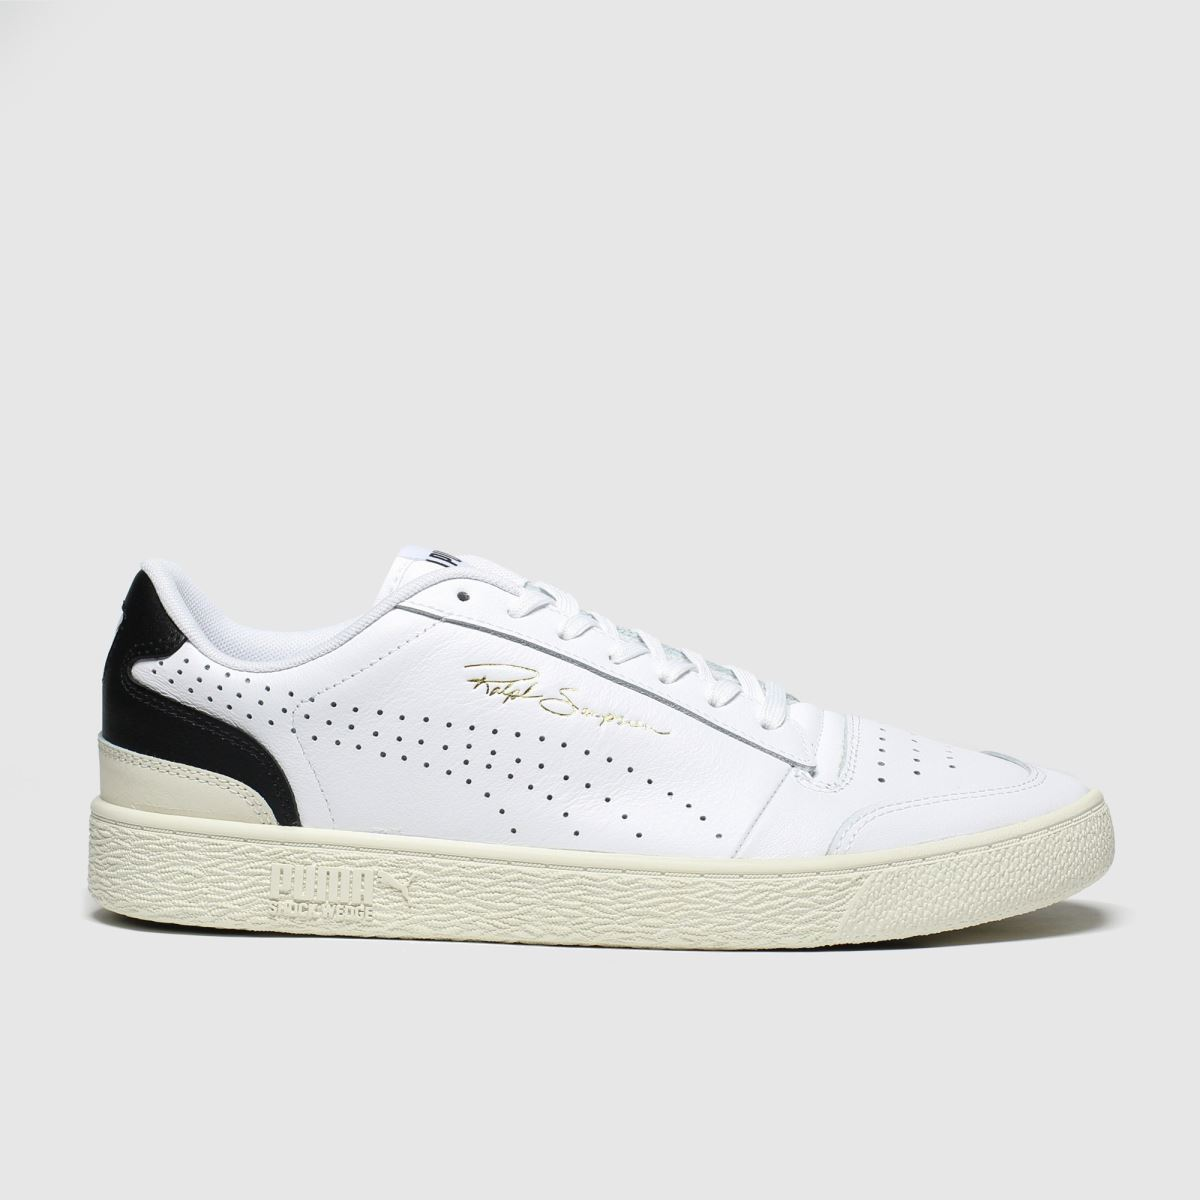 Puma White & Black Ralph Sampson Lo Perf Trainers